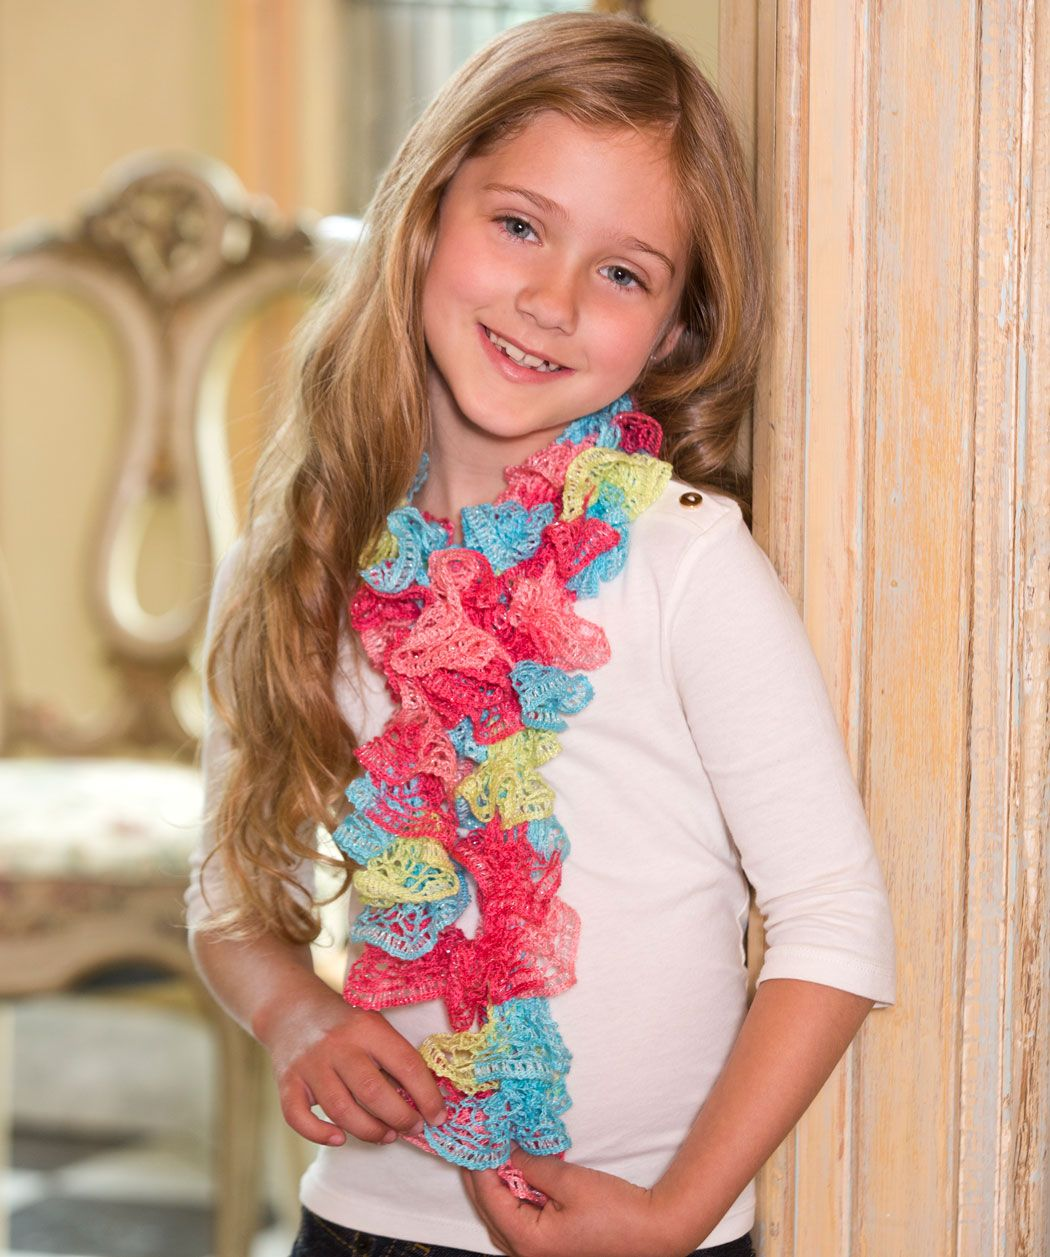 Sweet ruffle scarf crochet pattern red heart crochet patterns sweet ruffle scarf free crochet pattern from red heart yarns bankloansurffo Image collections